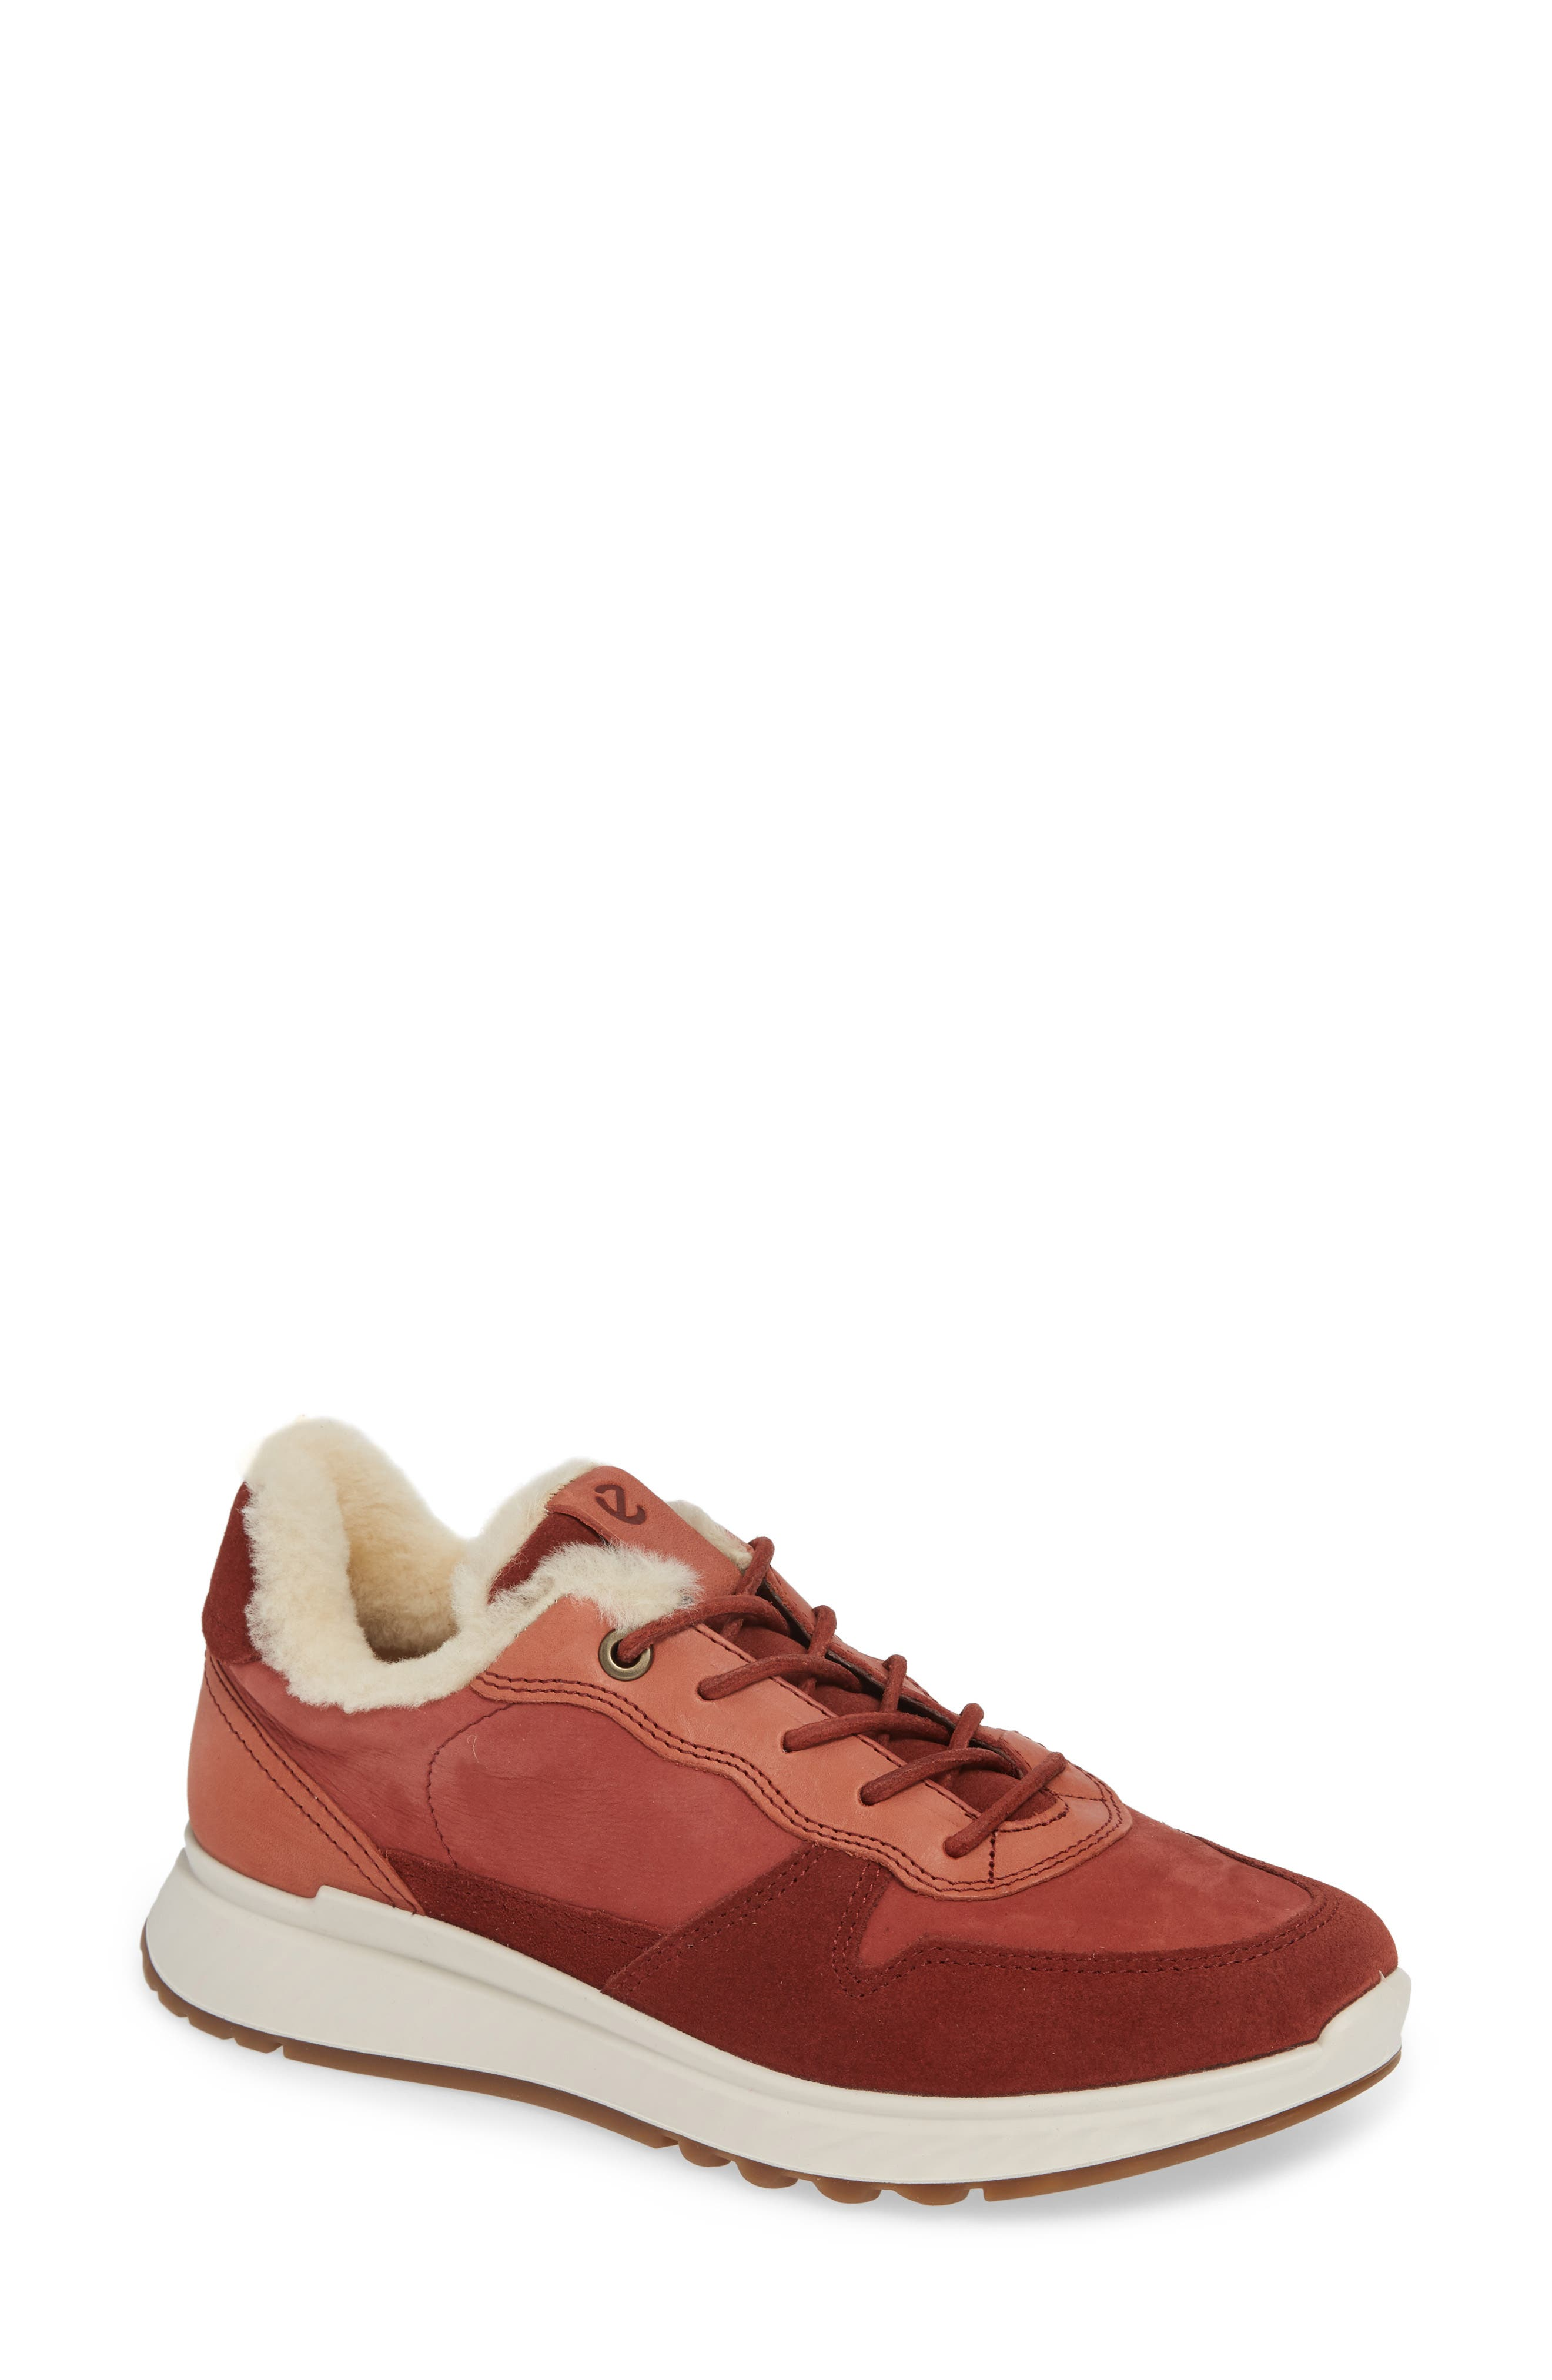 ST1 Genuine Shearling Sneaker,                             Main thumbnail 1, color,                             FIRED BRICK NUBUCK LEATHER